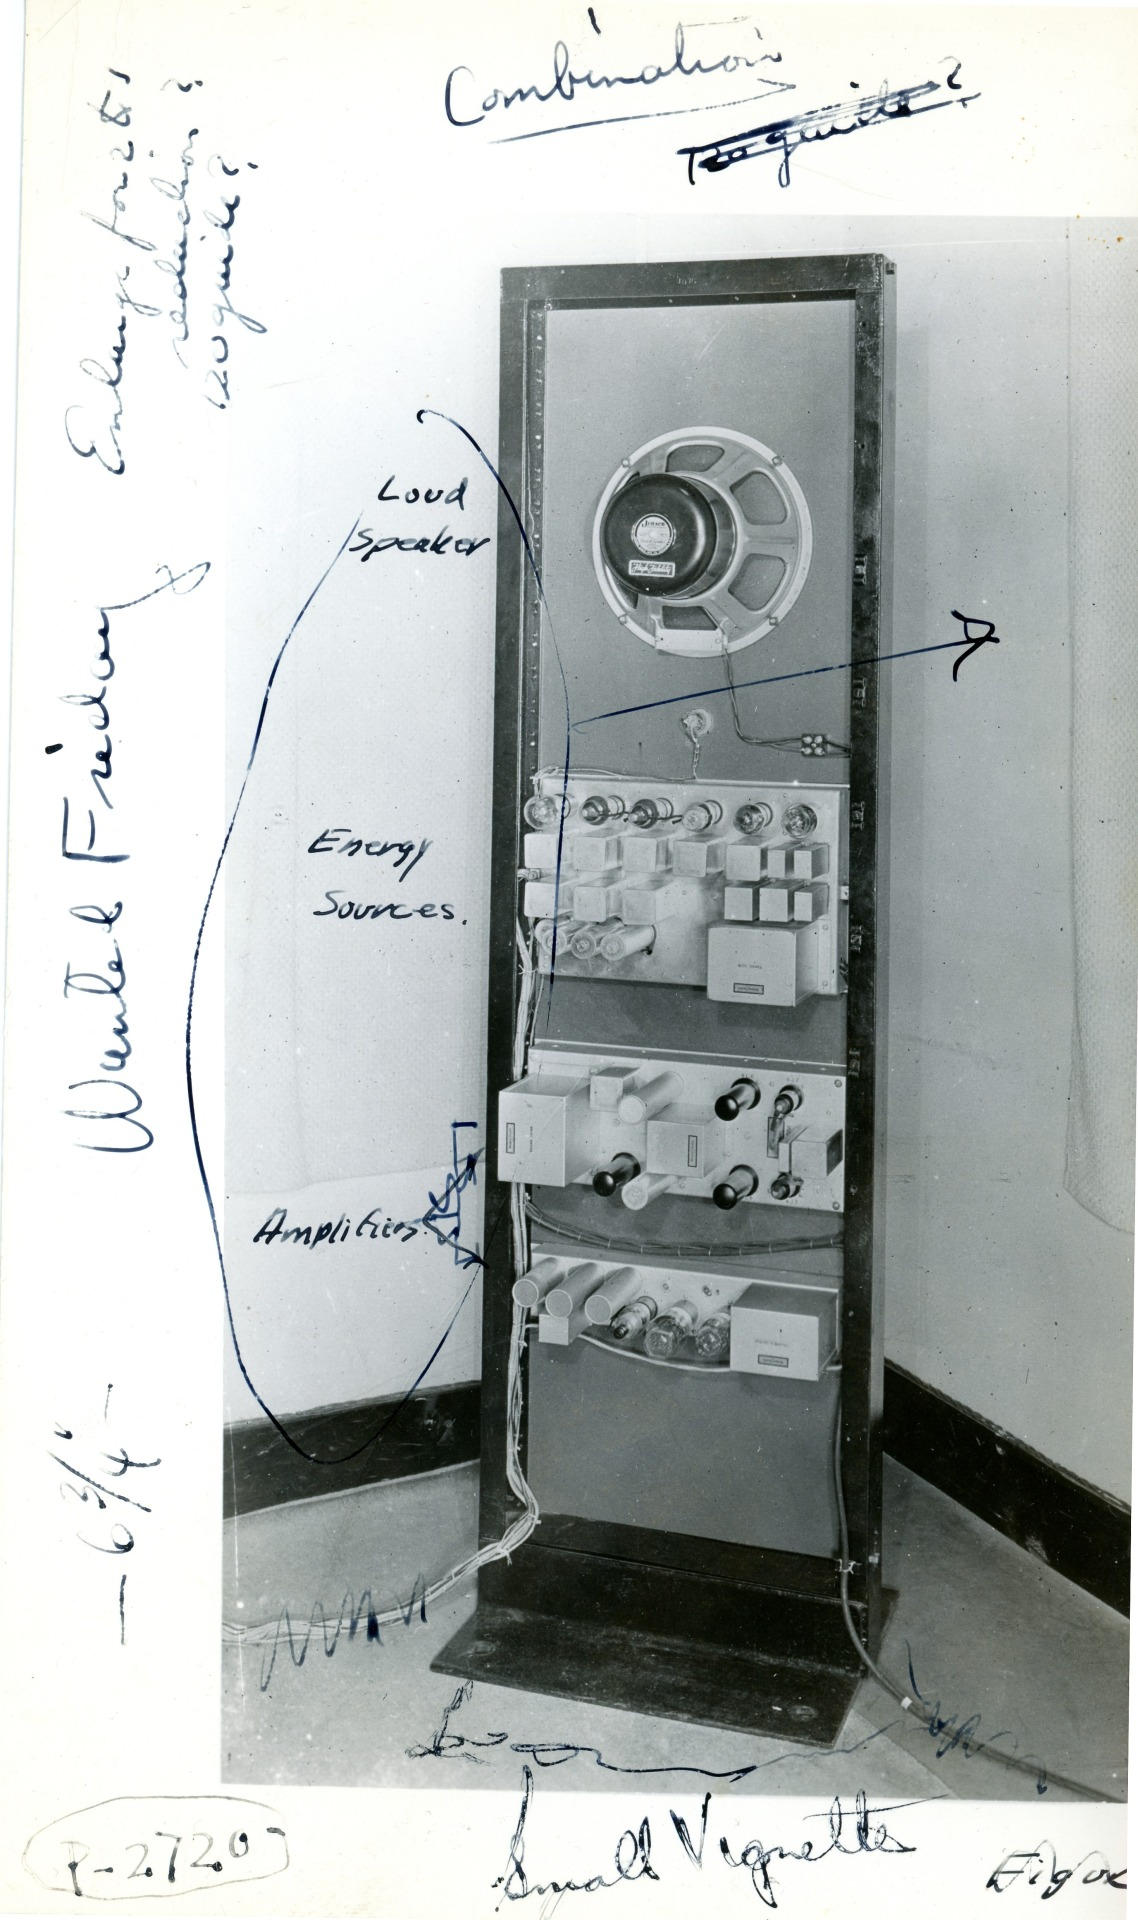 A back view of the Vocoder, in this picture who has some explanation signs.